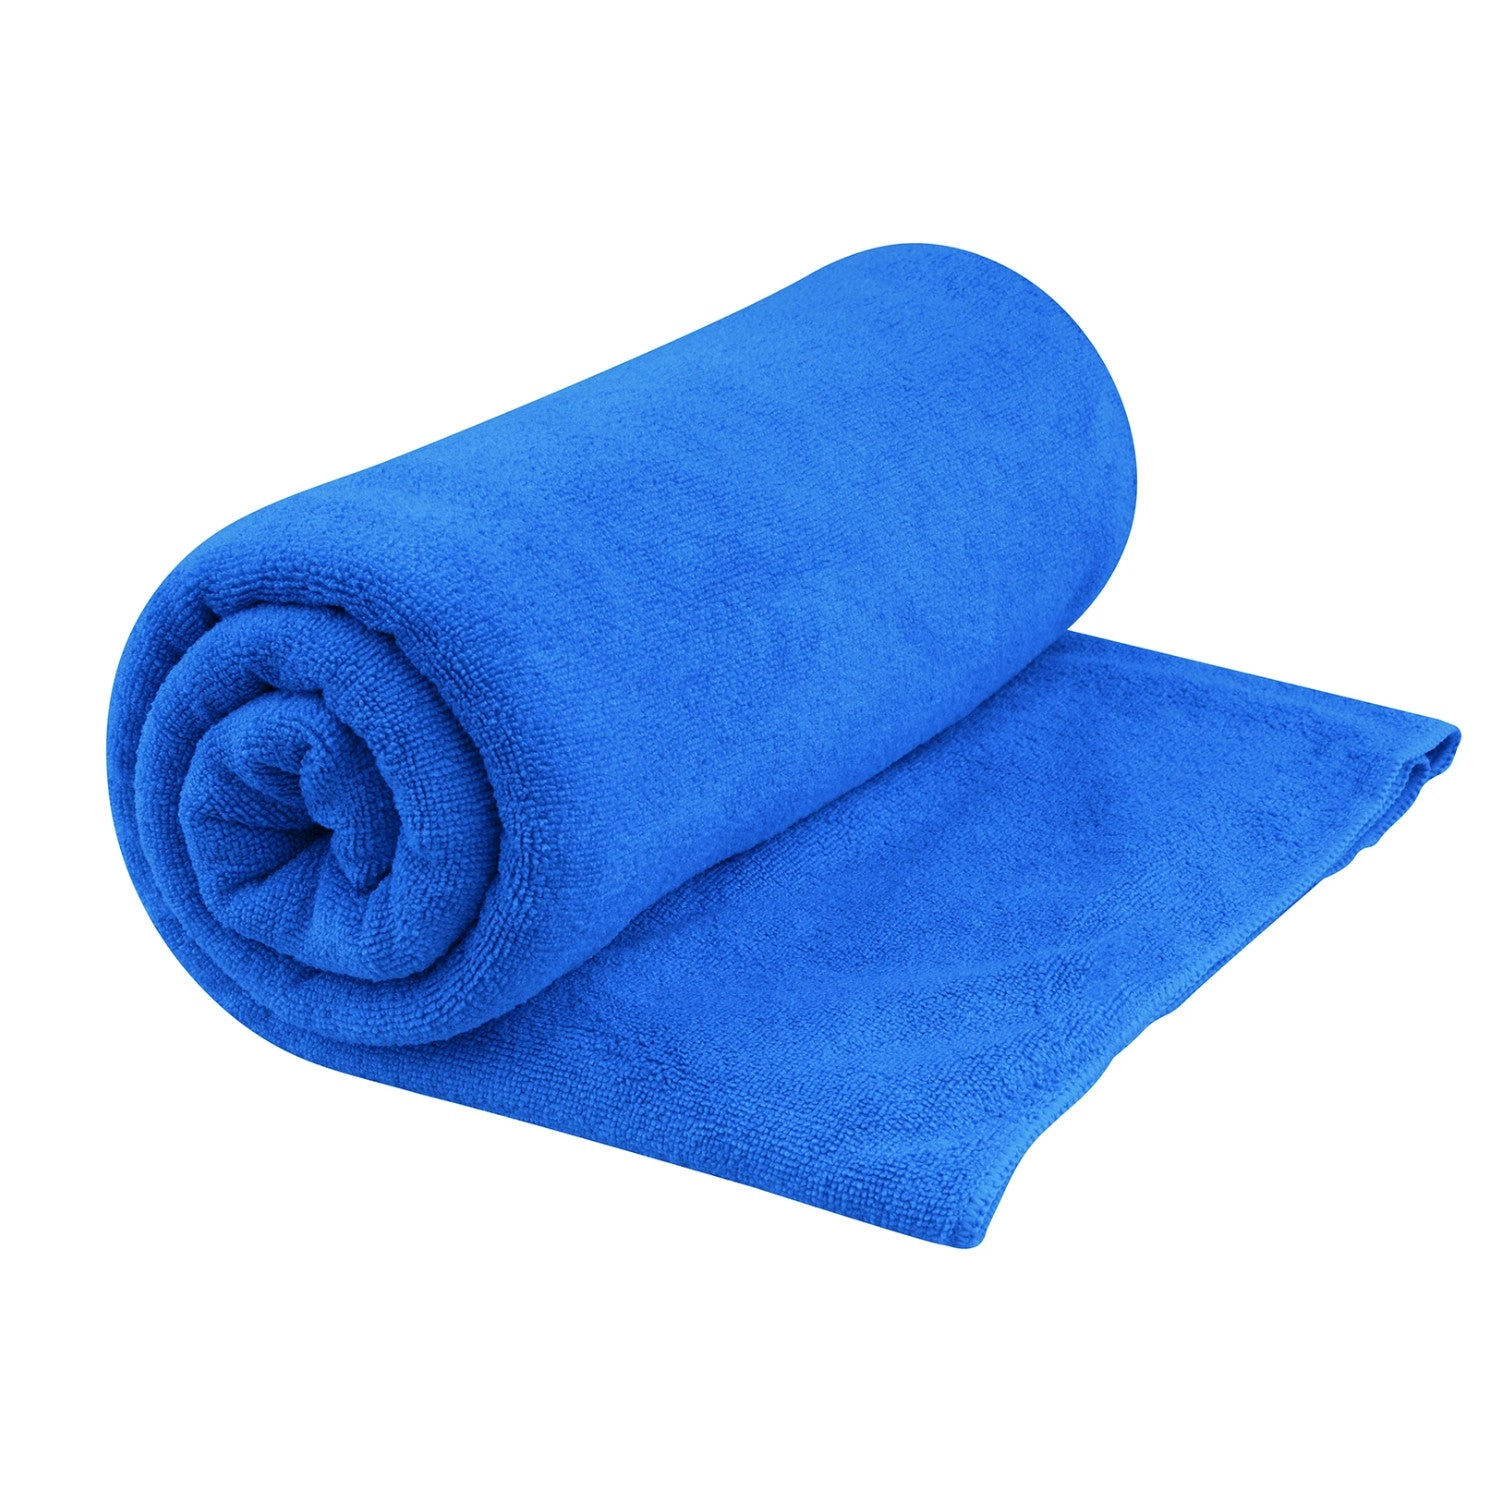 Sea To Summit Tek Towel in Blue